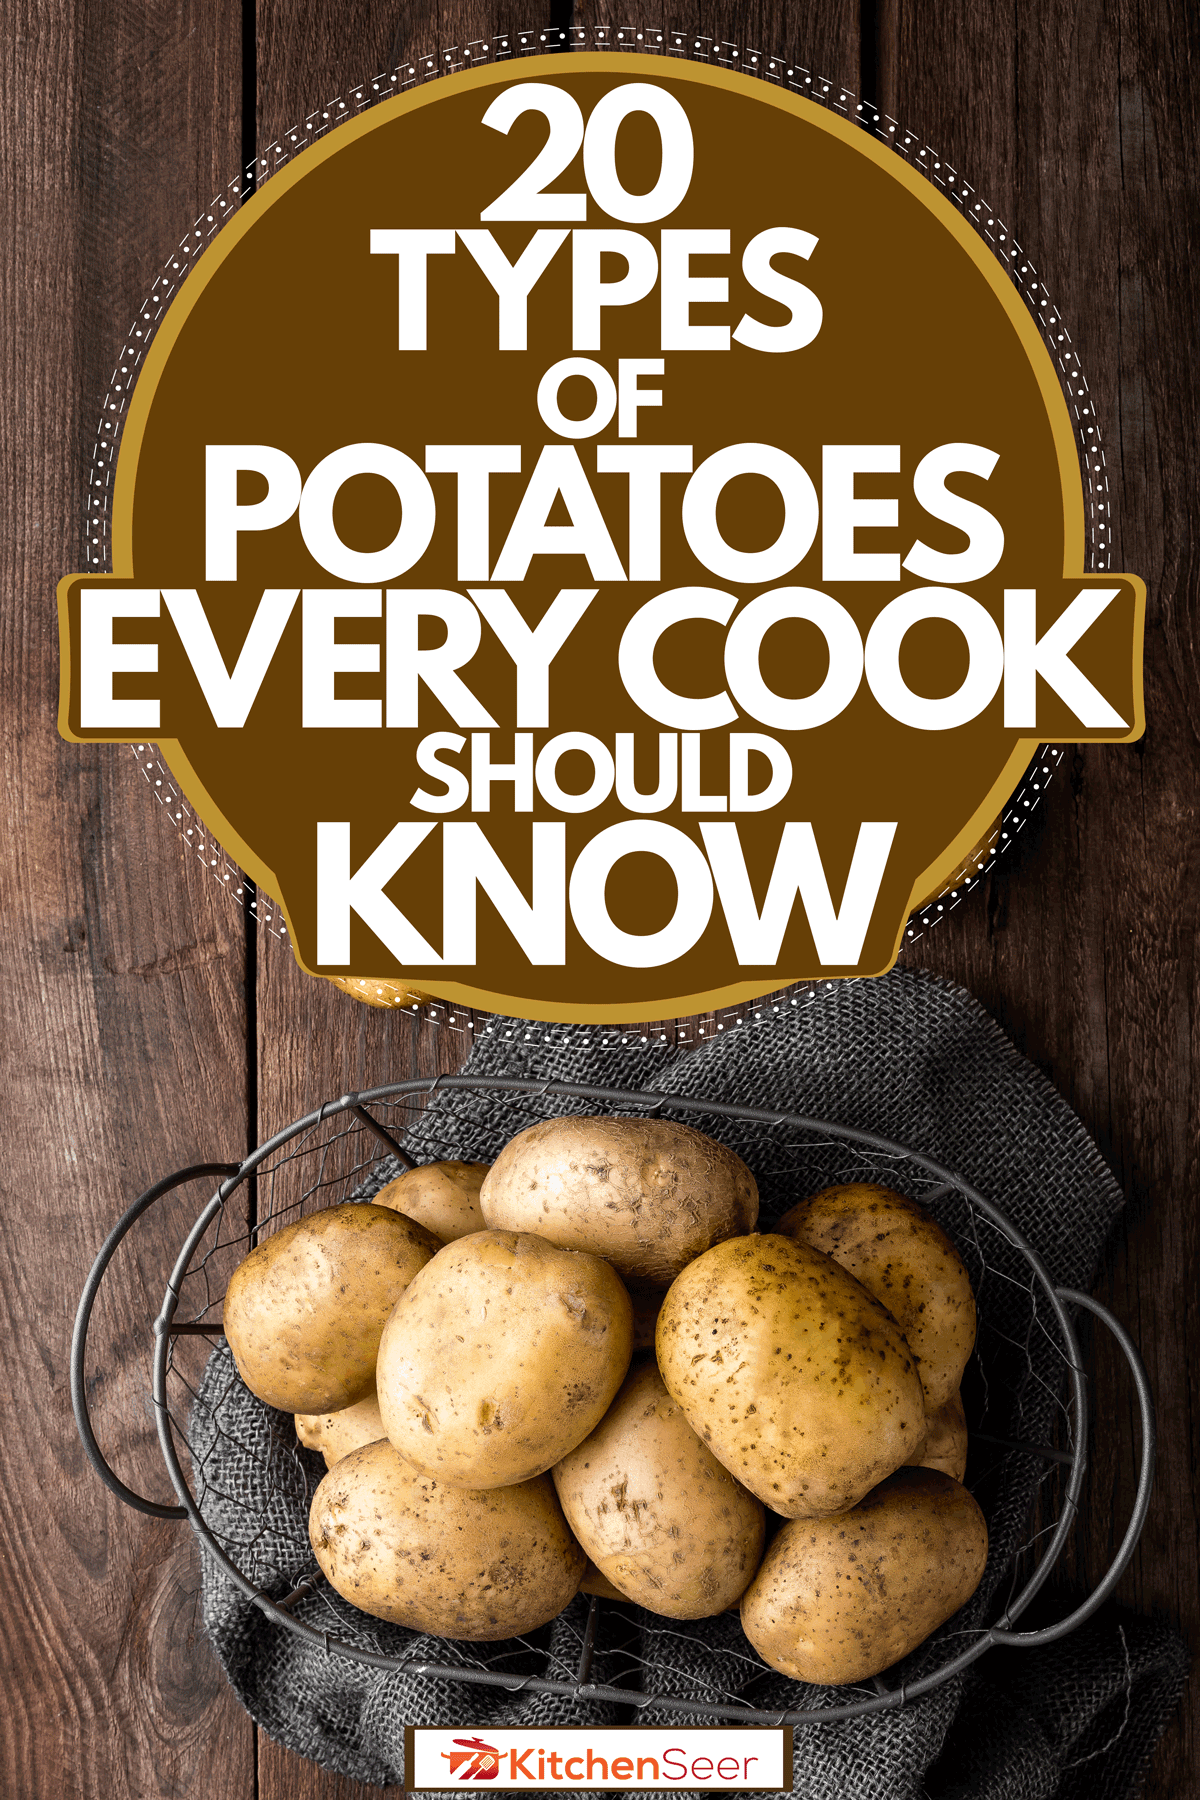 Newly harvested potatoes placed on a basket on top of a wooden table, 20 Types Of Potatoes Every Cook Should Know